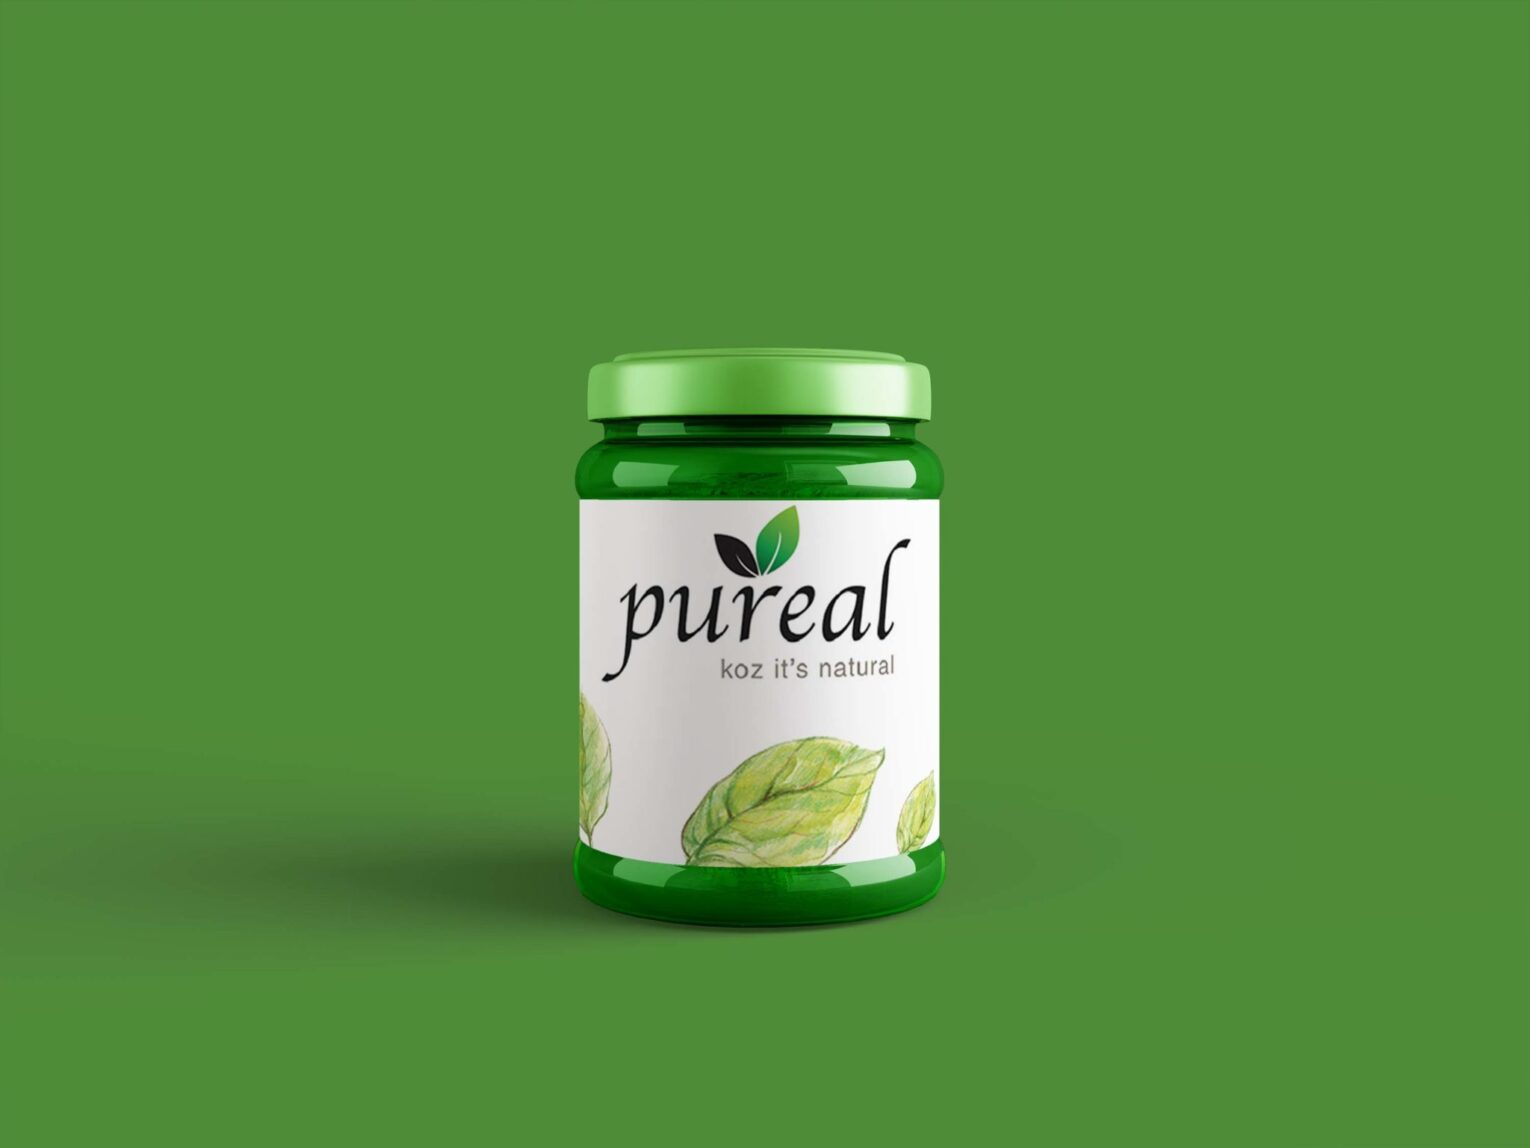 Pure pickle Jar Label mockup